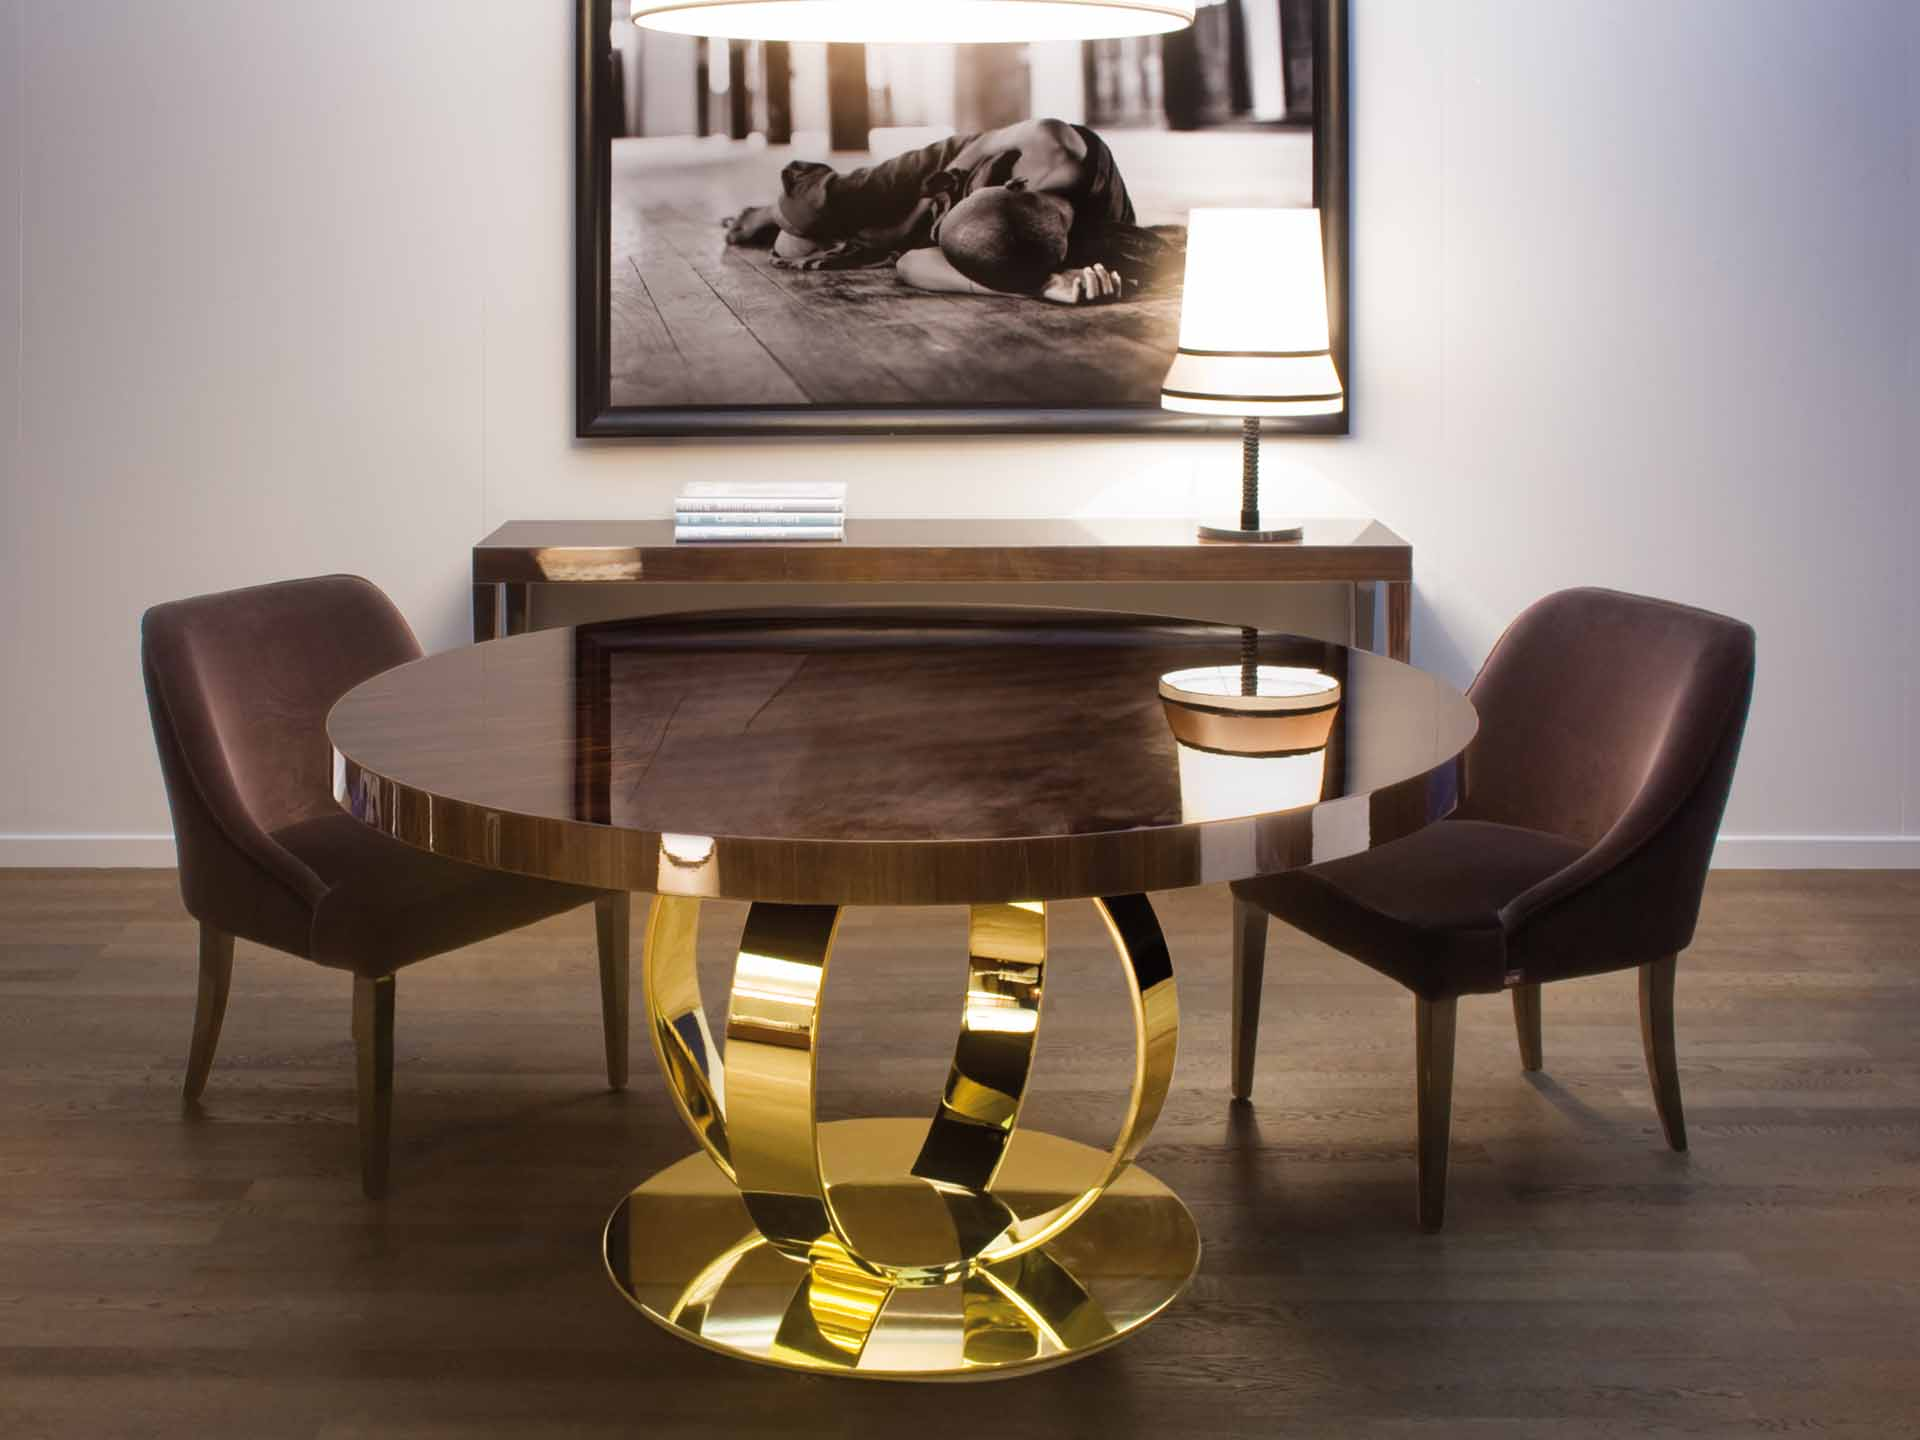 1_ANDREW_DINNER_TABLE-_ROUND-_GLOSS_MAKASSAR_EBONY_VENEERED_TOP_-_GLOSS_BRASS_PLATED_METAL_BASE.jpg